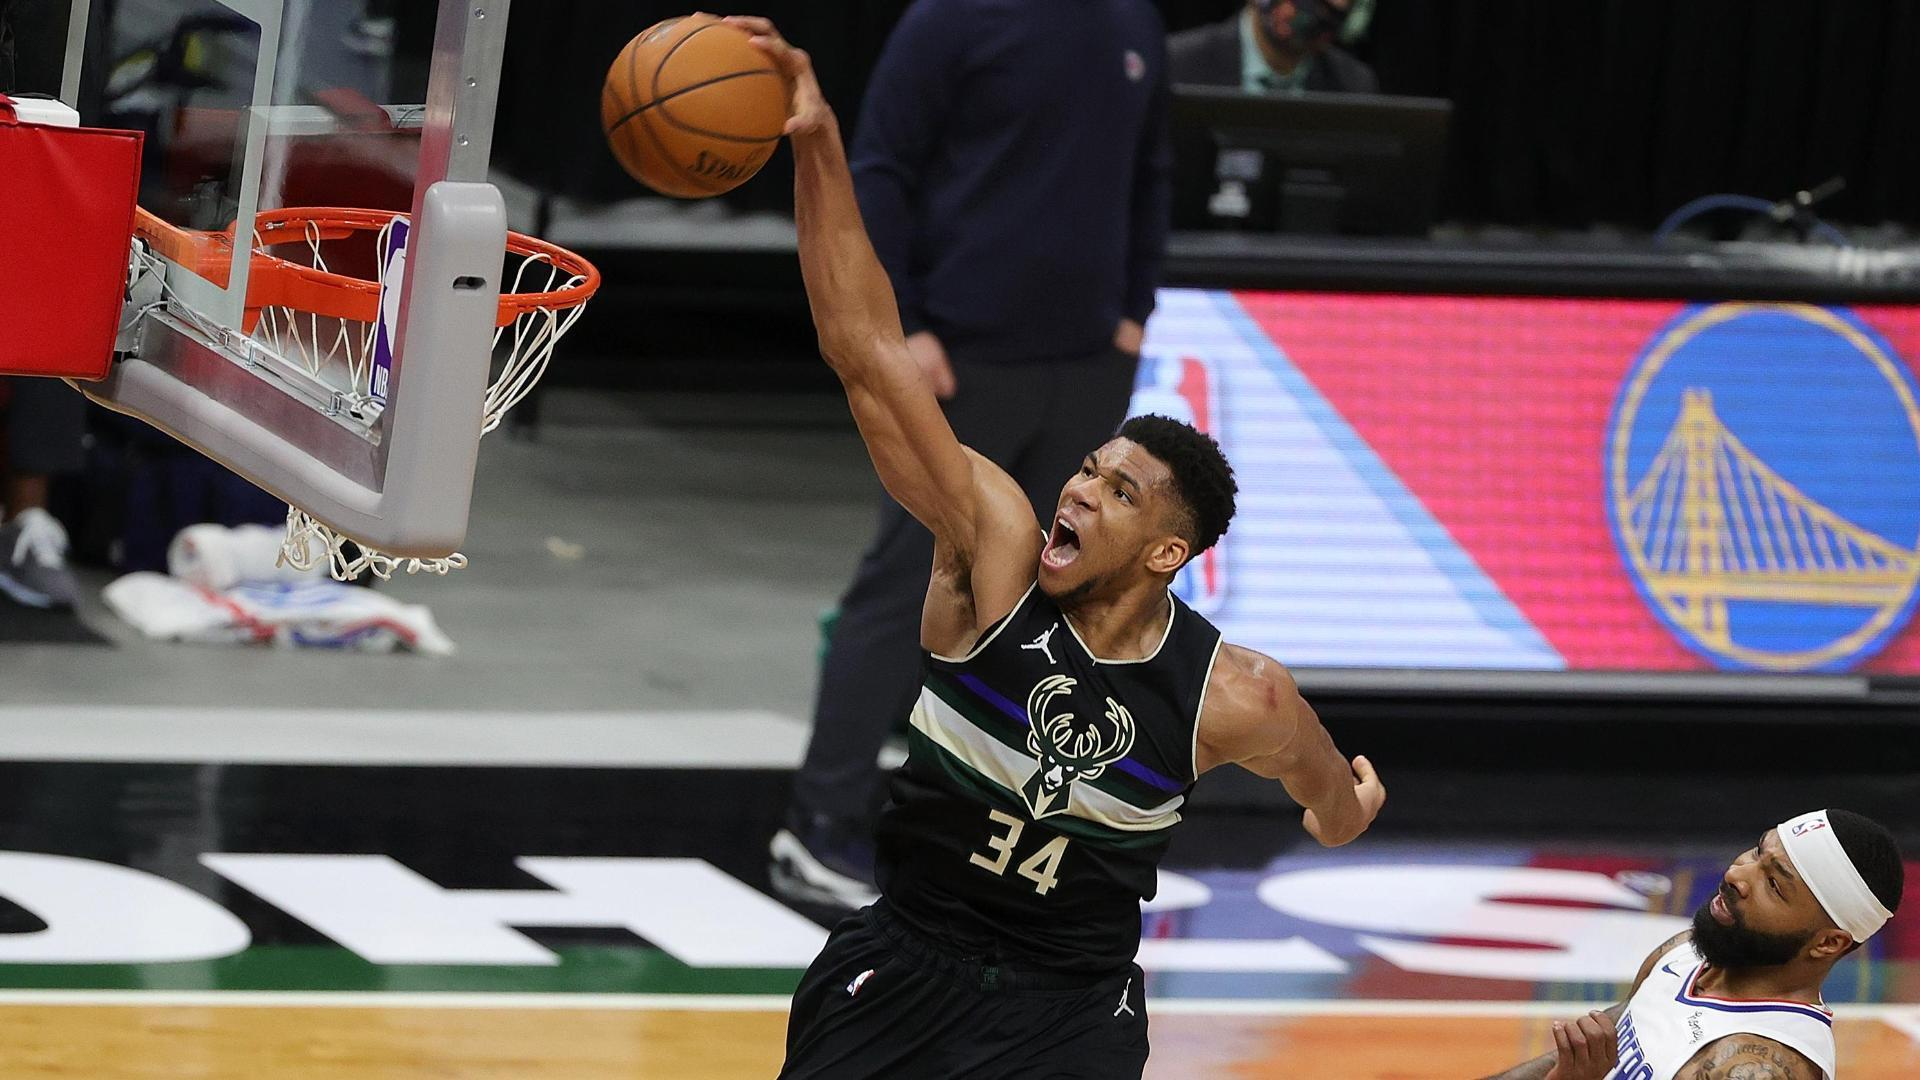 Giannis soars for vicious slam to help solidify Bucks' win